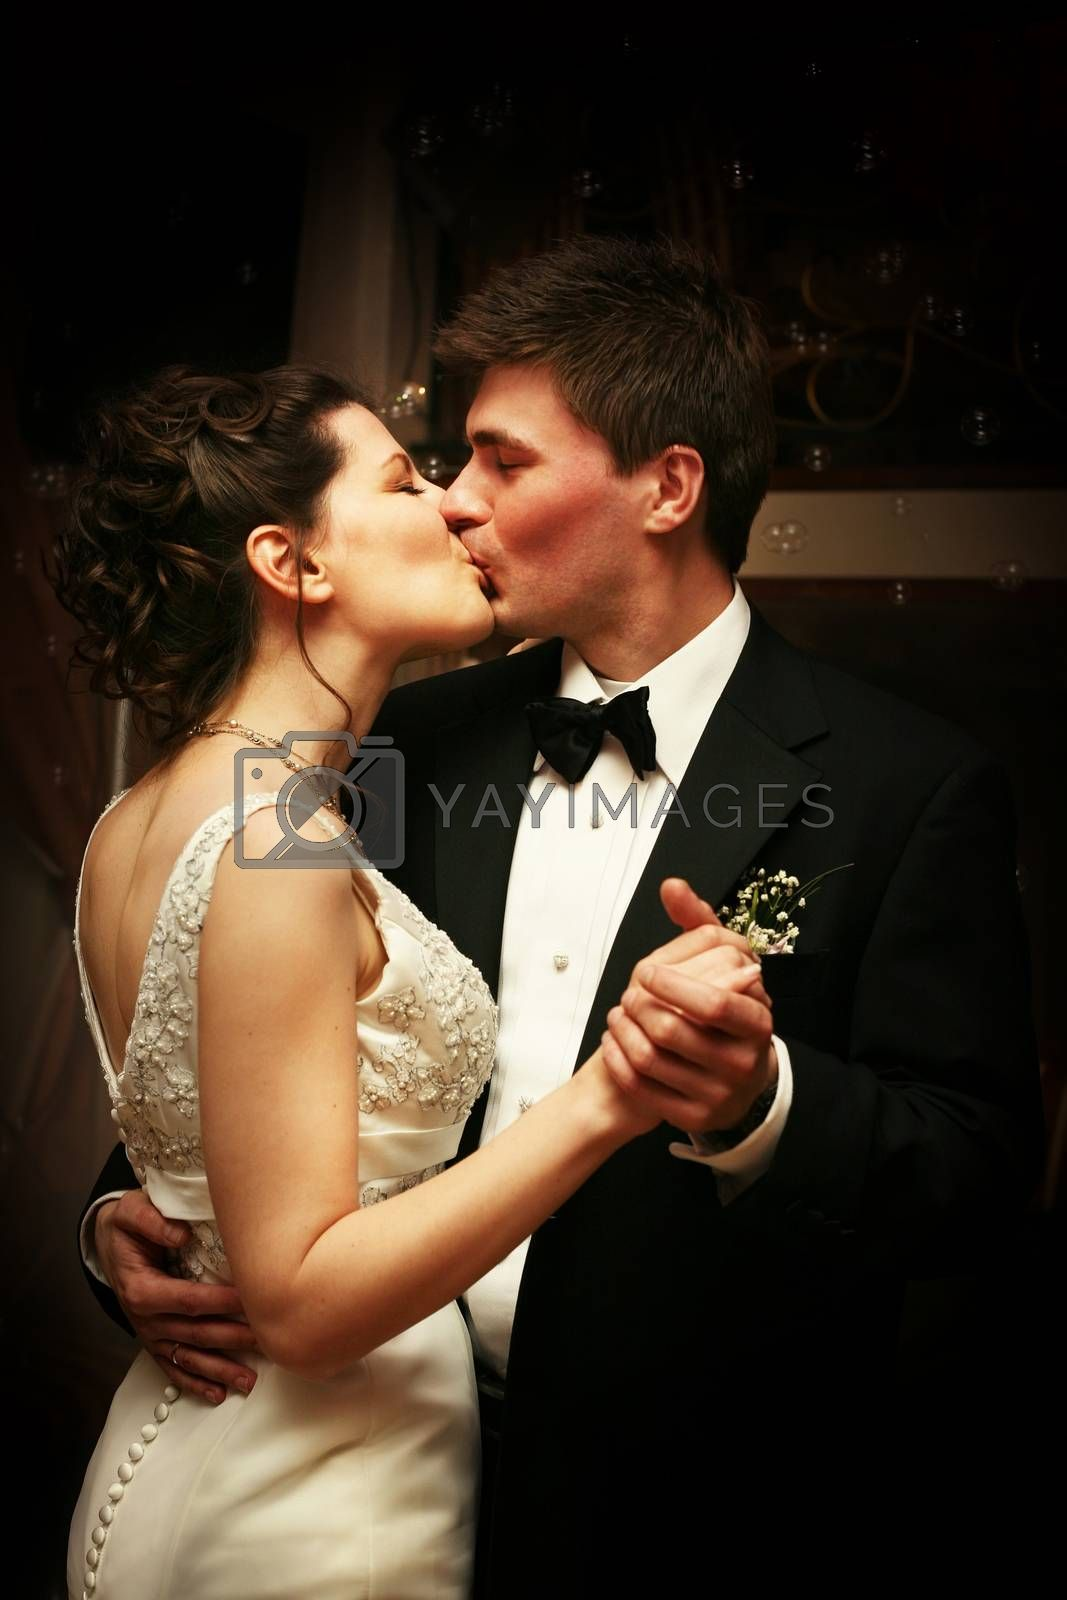 Romantic moment between bride and groom kissing celebrating their wedding day